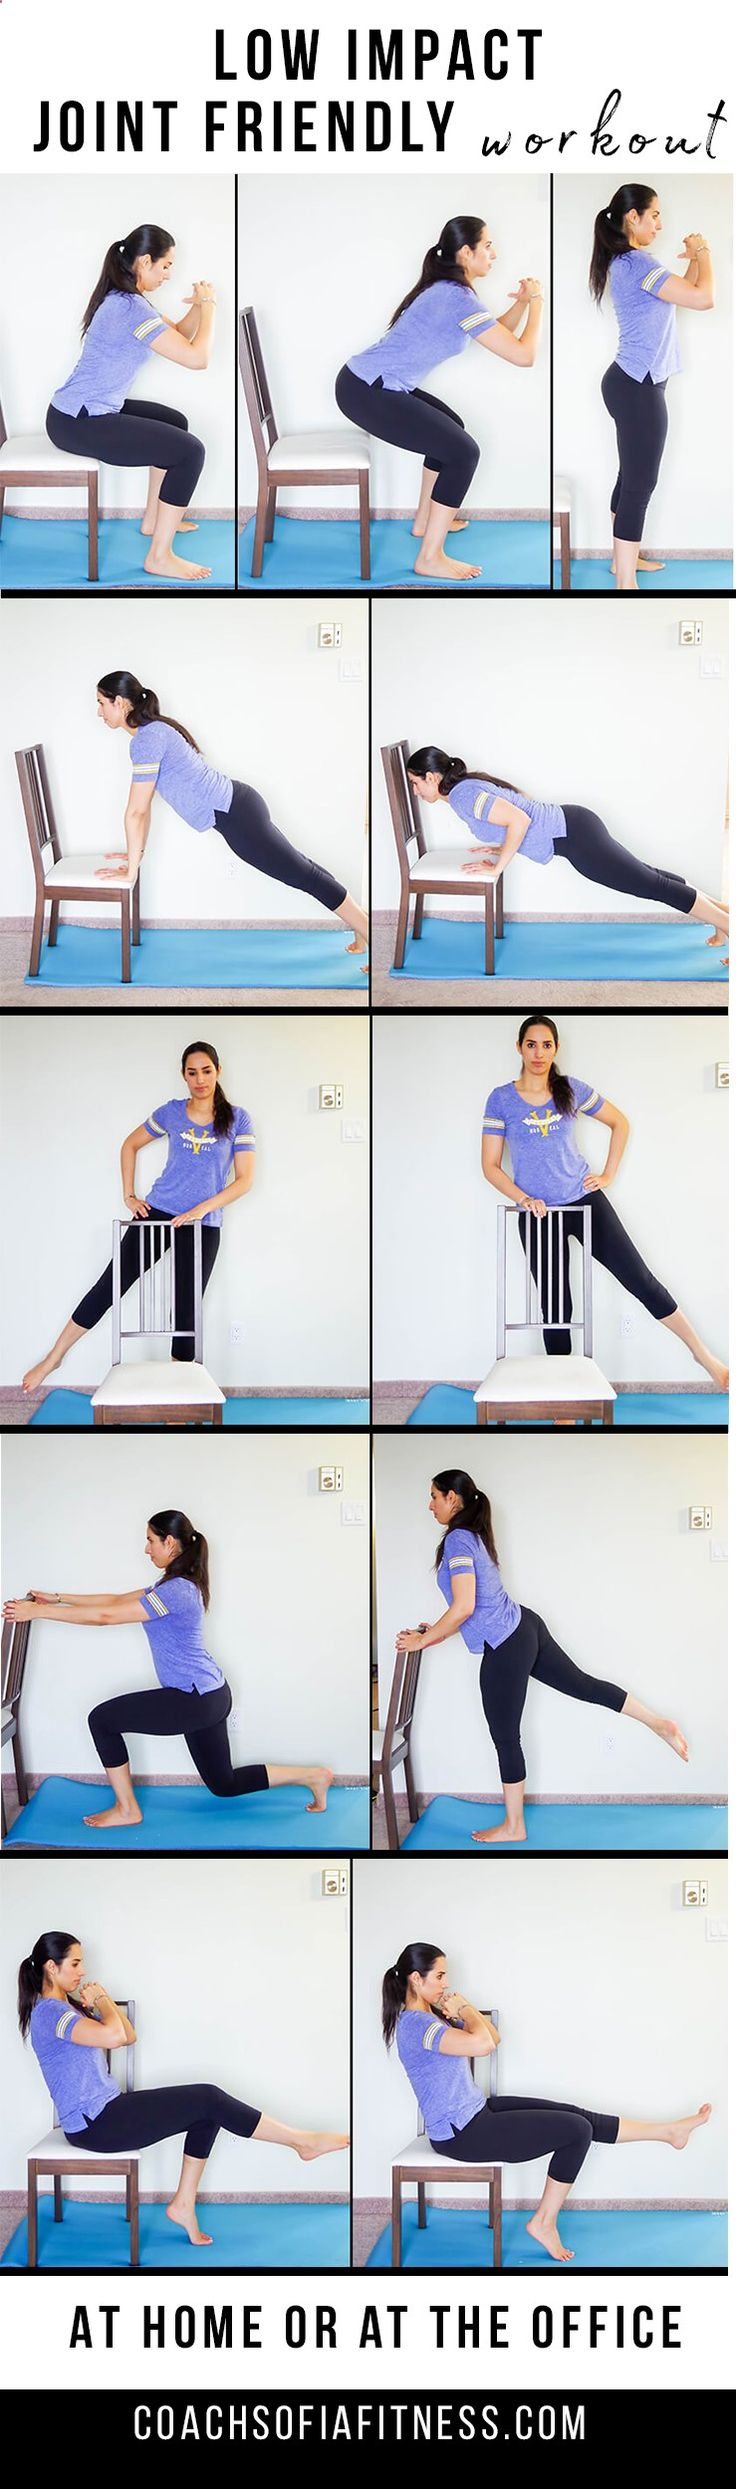 Low Impact Joint Workout you can do when suffering from low back pain or chronic pain | joint friendly | low impact | workout with back pain | short workouts | home workout | office workout